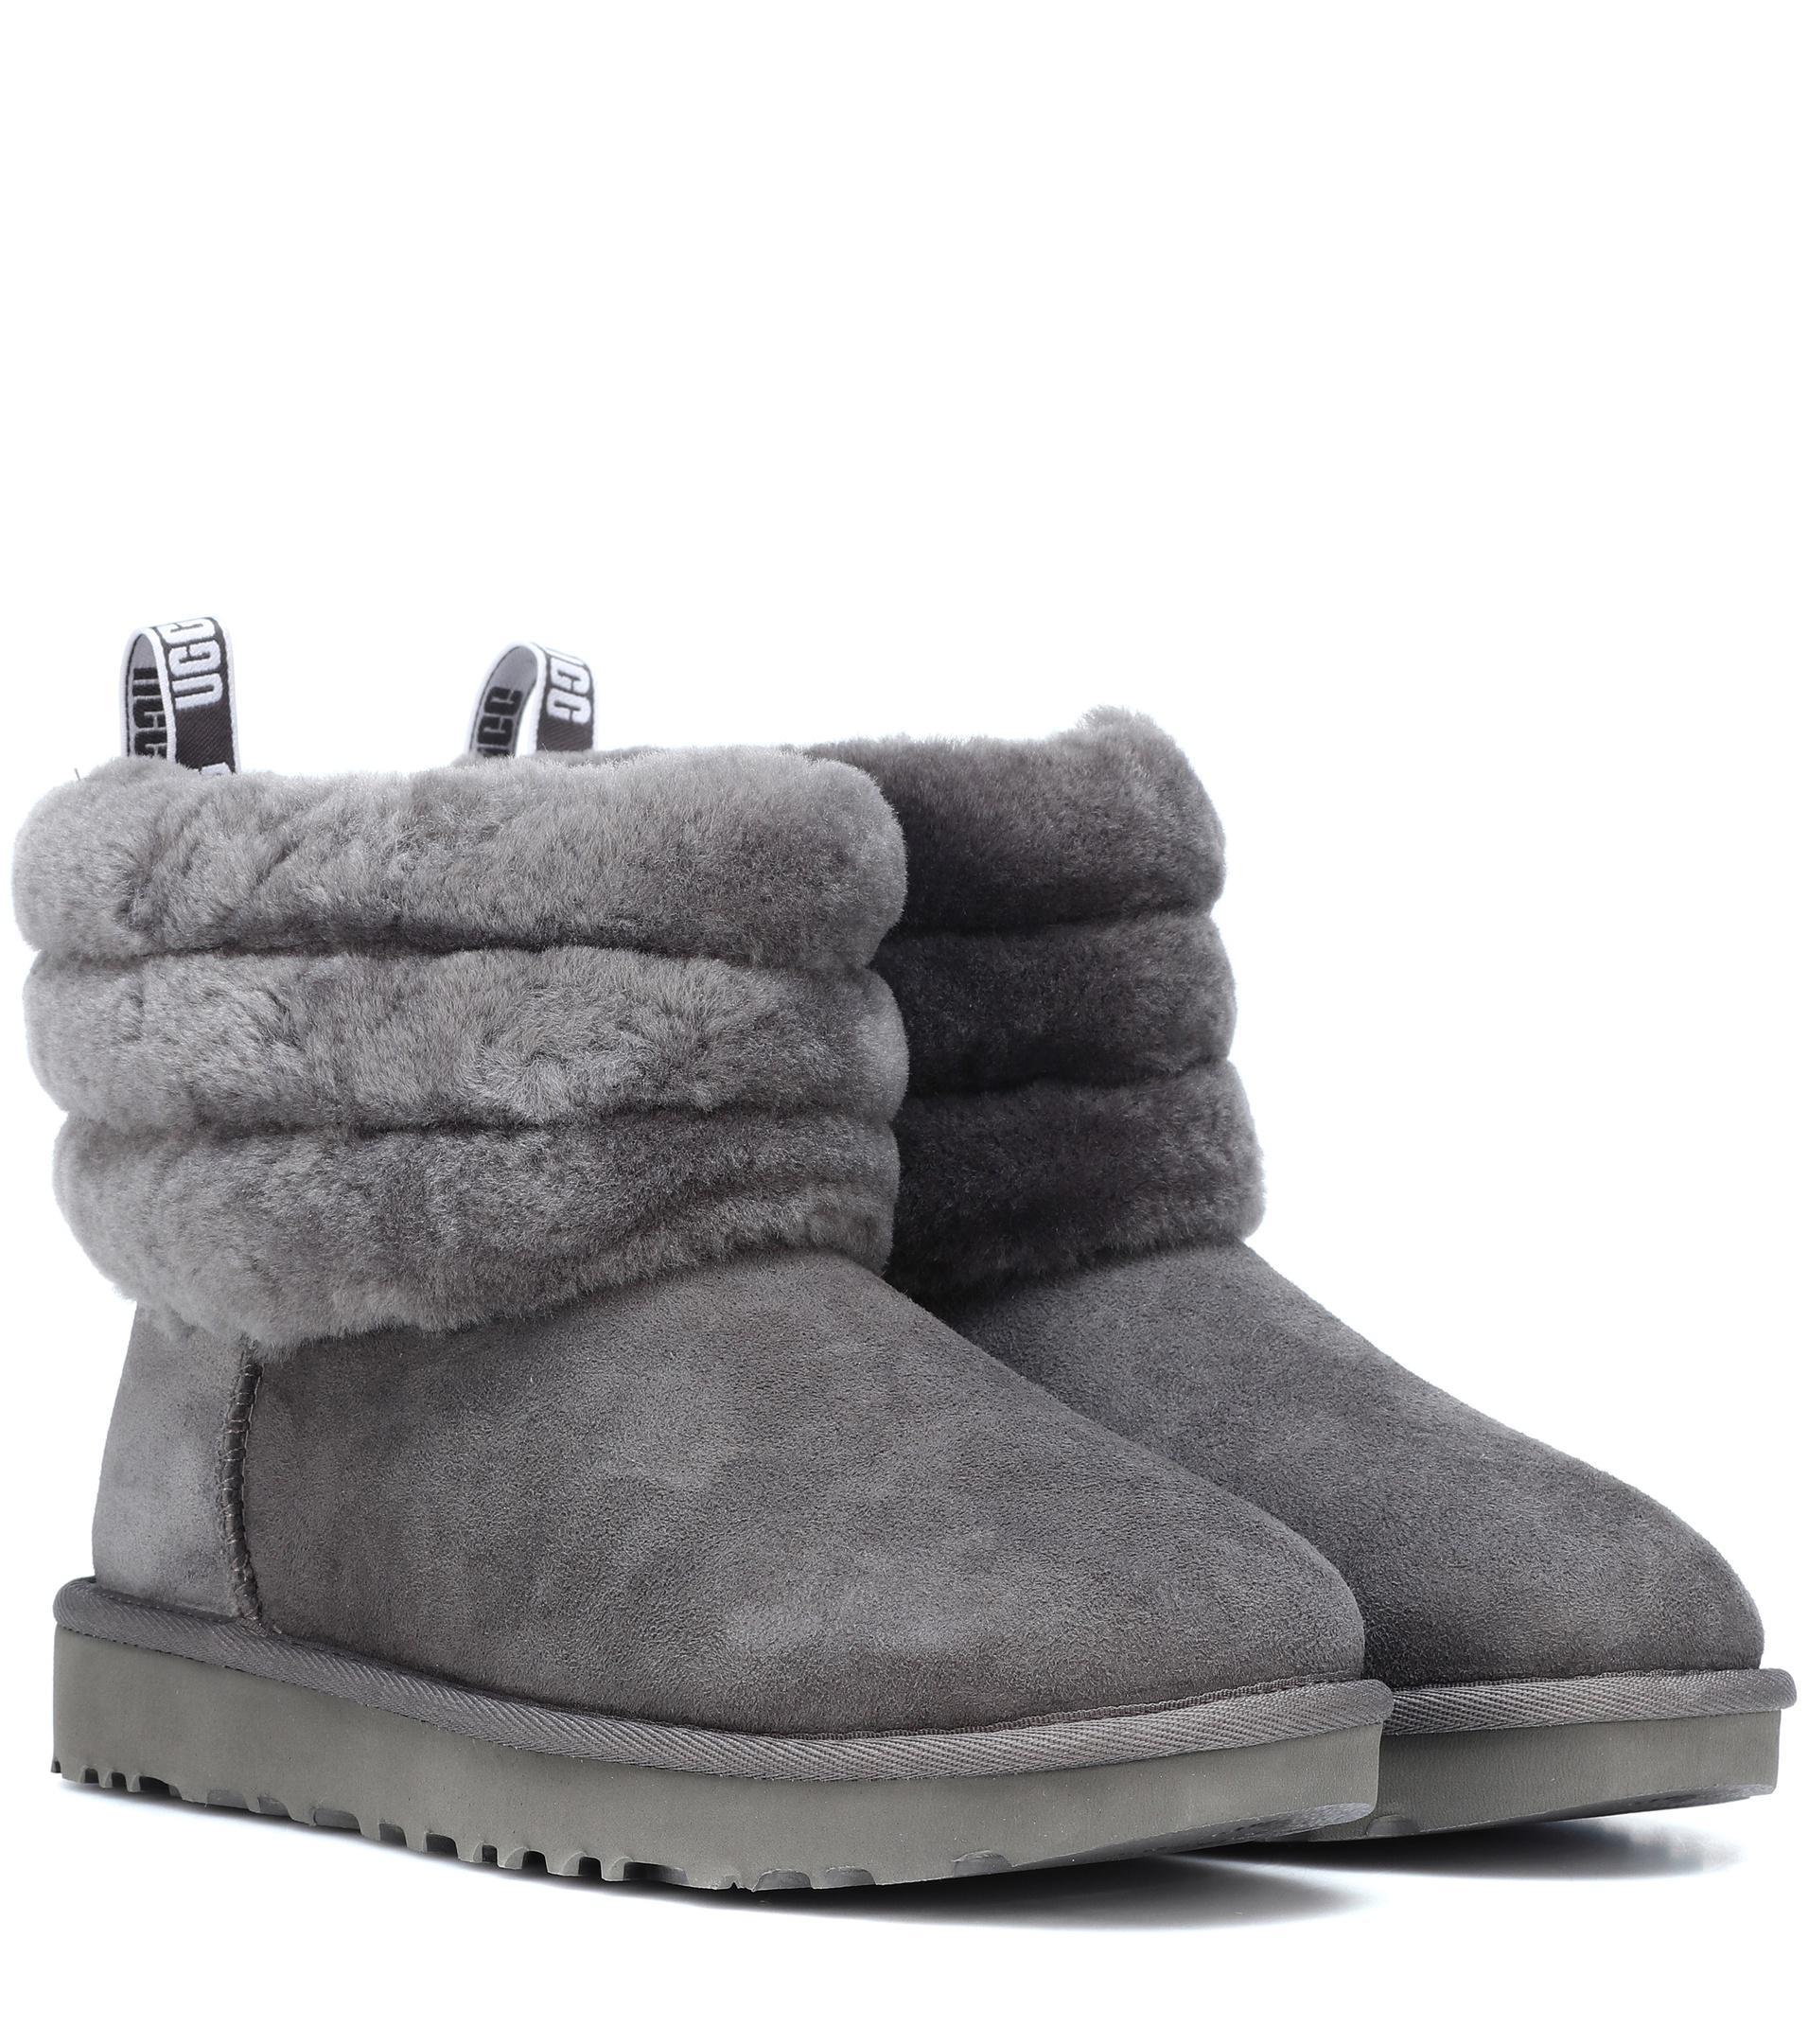 90dcb2a6c56 Ugg Gray Fluff Mini Quilted Suede Ankle Boots